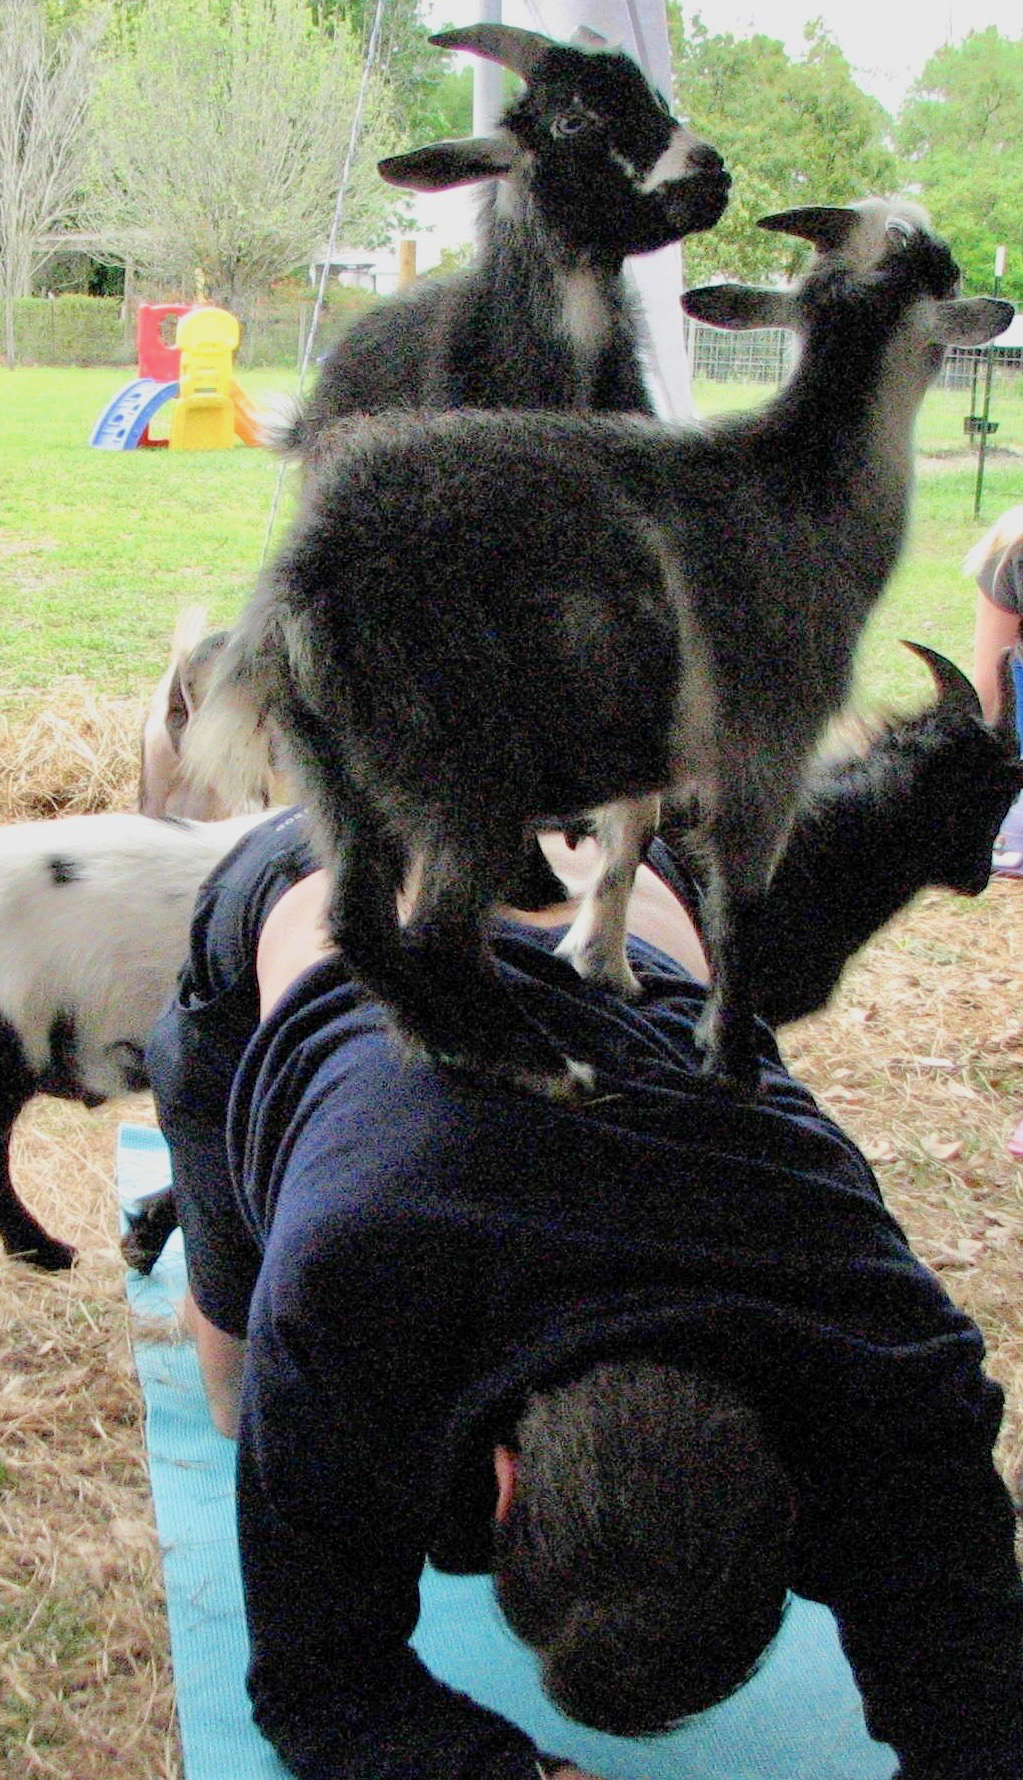 Oh wait. He has TWO goats on his back. OW! Maybe he liked it. It seems that most everyone at goat yoga Orlando enjoyed the experience.